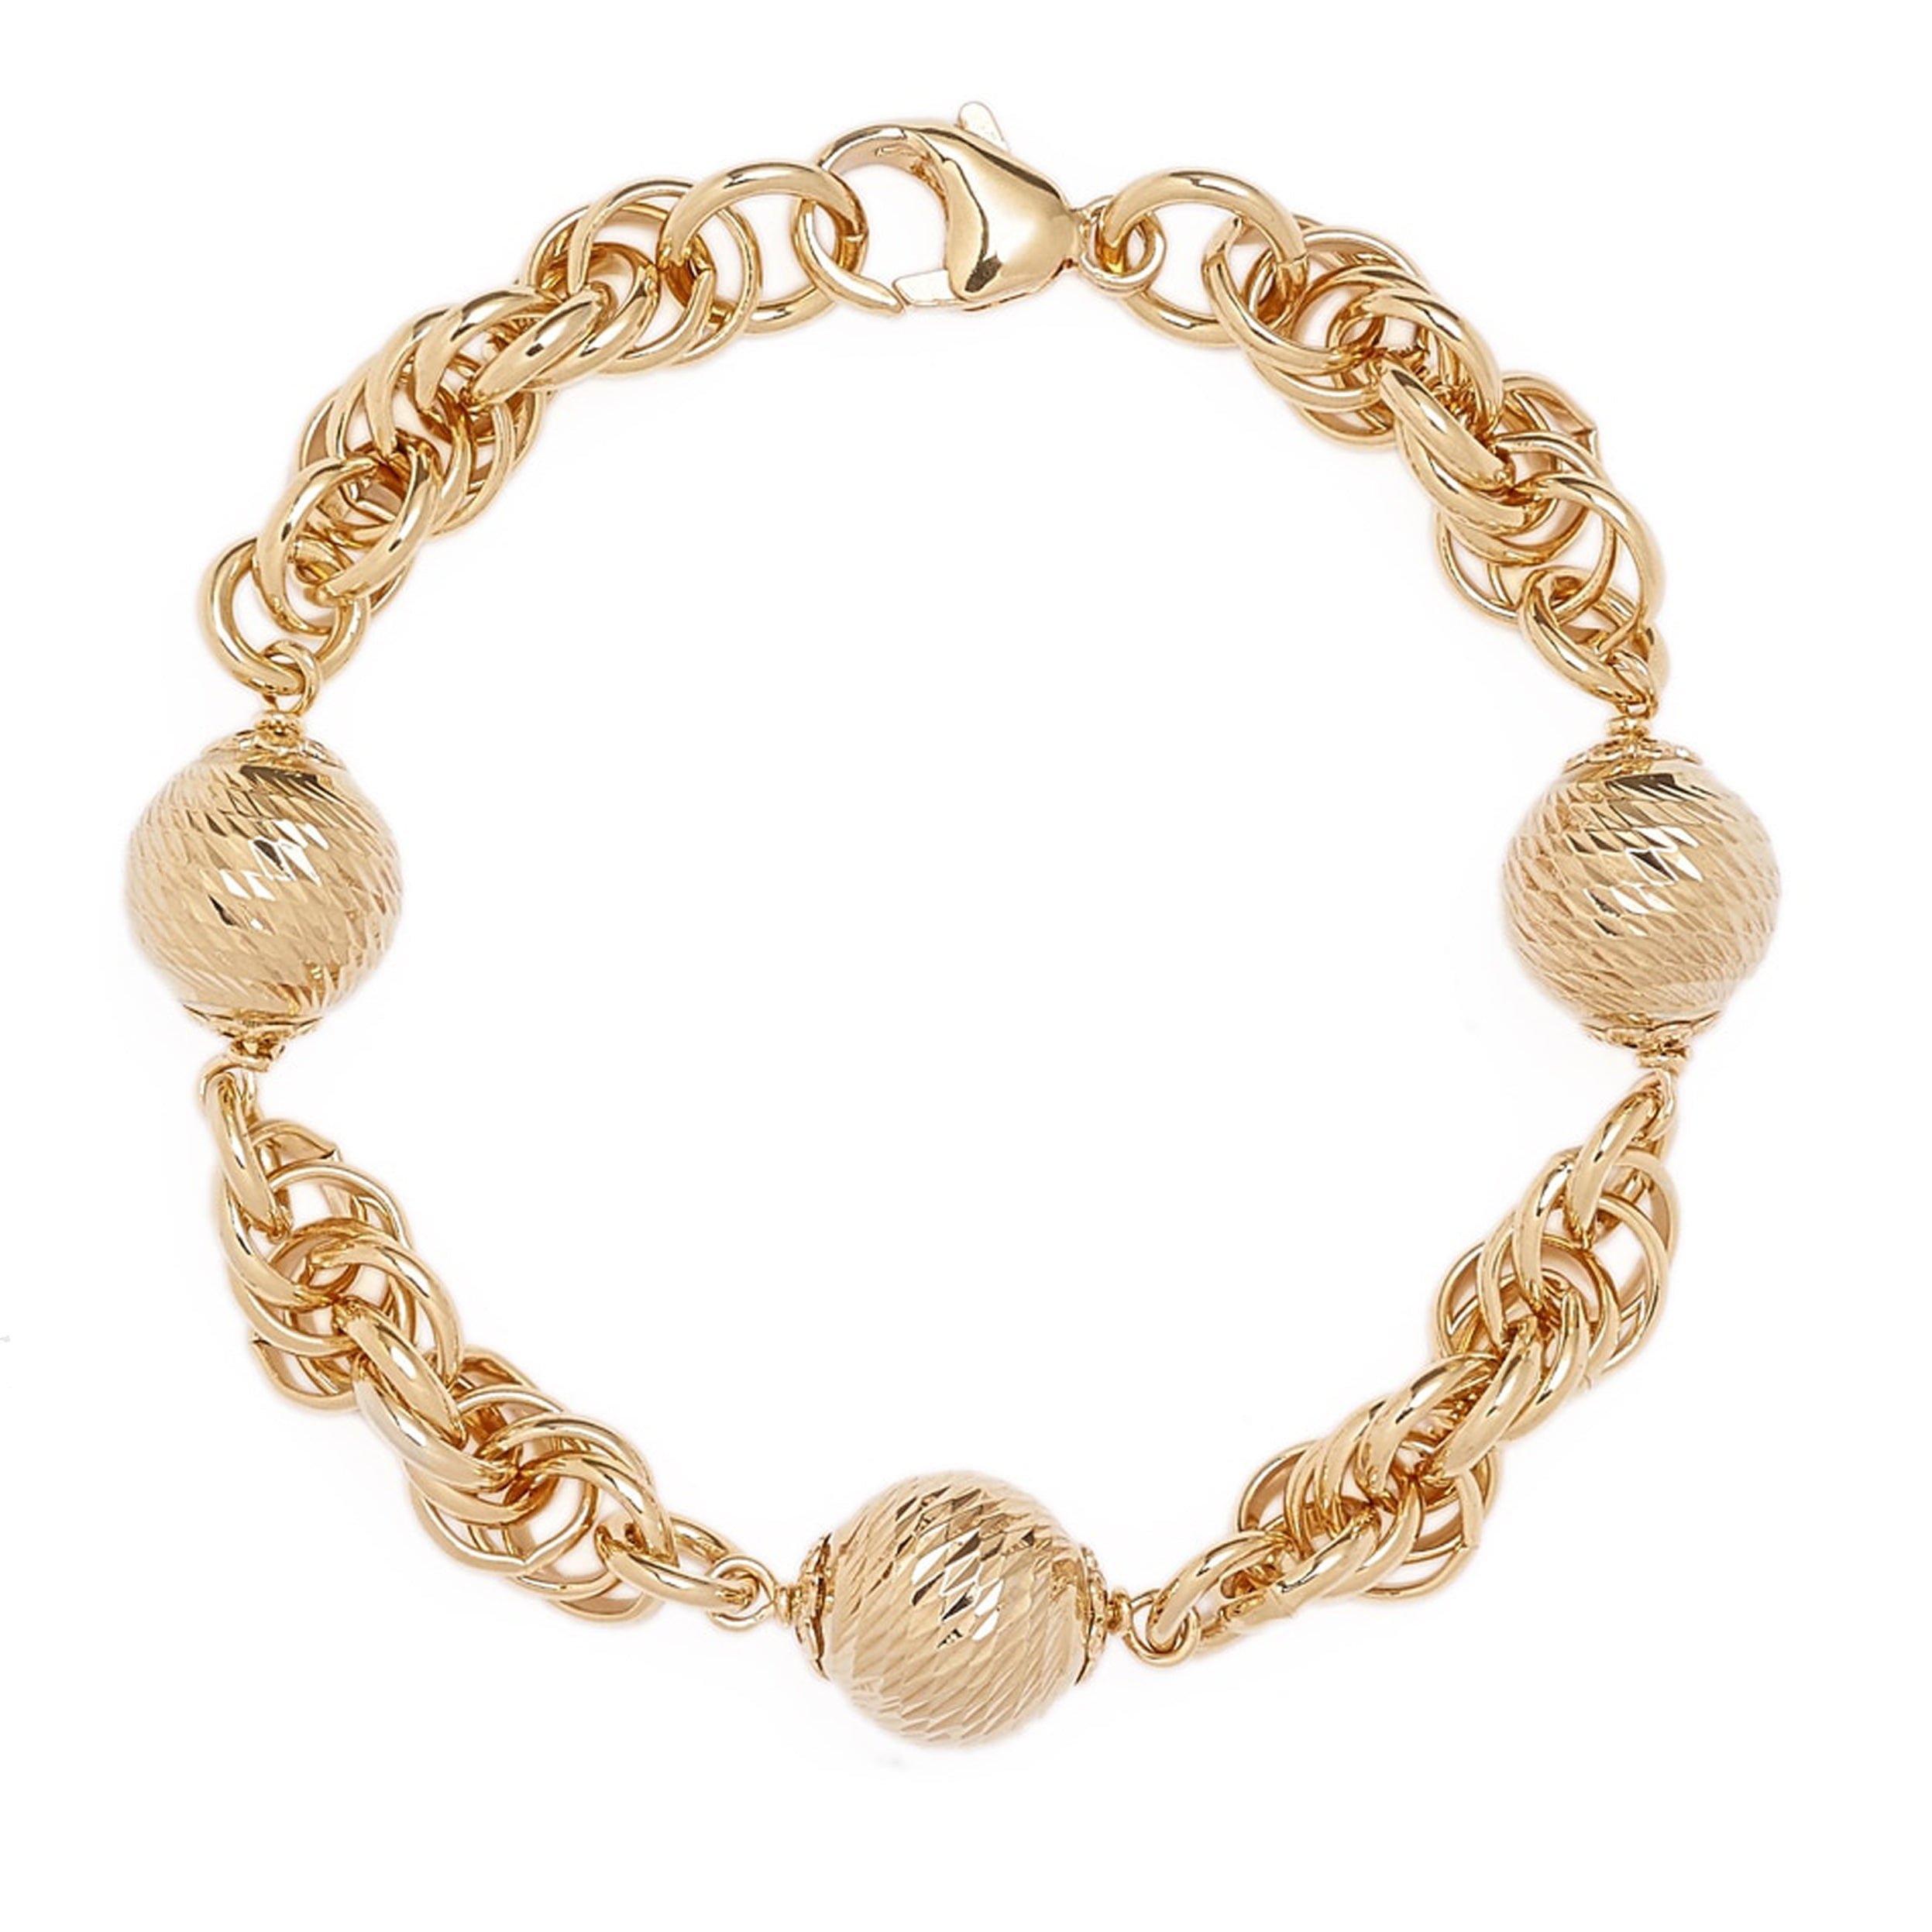 "Forever Last   18k Gold Plated Women's  7.5"" Rope  With 3 Gold Beads Bracelet"